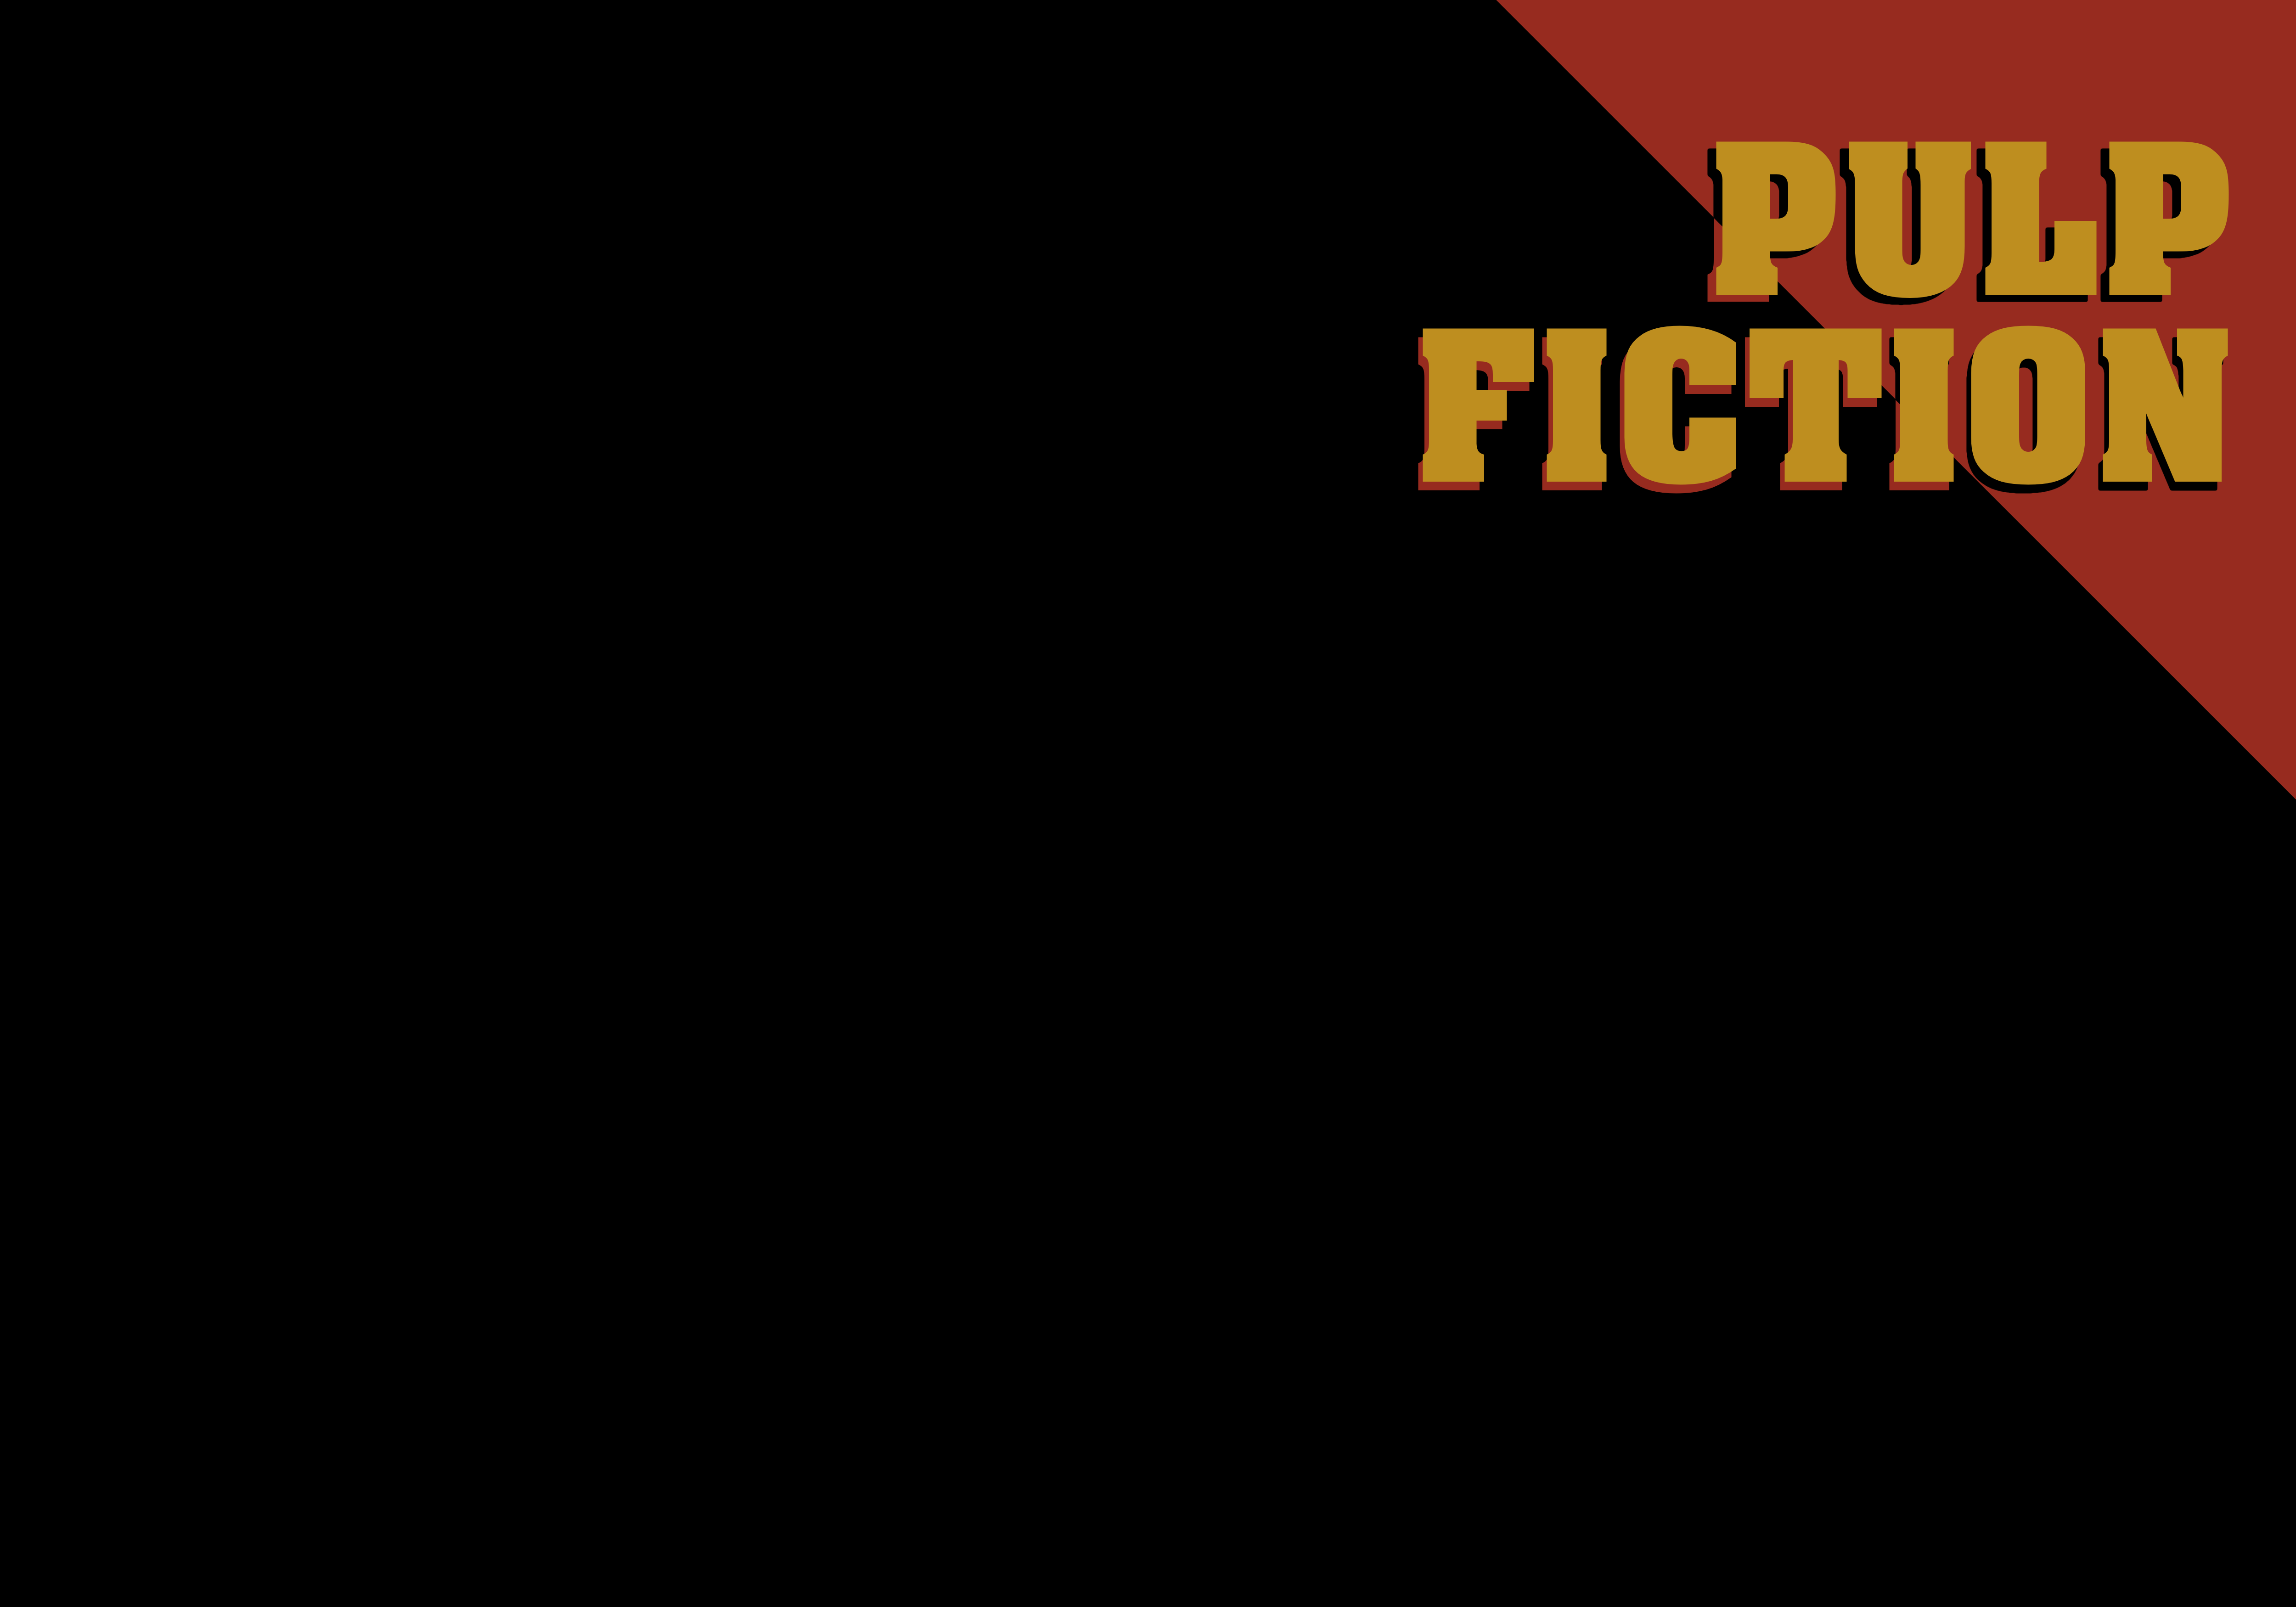 2 4k Ultra Hd Pulp Fiction Wallpapers Background Images